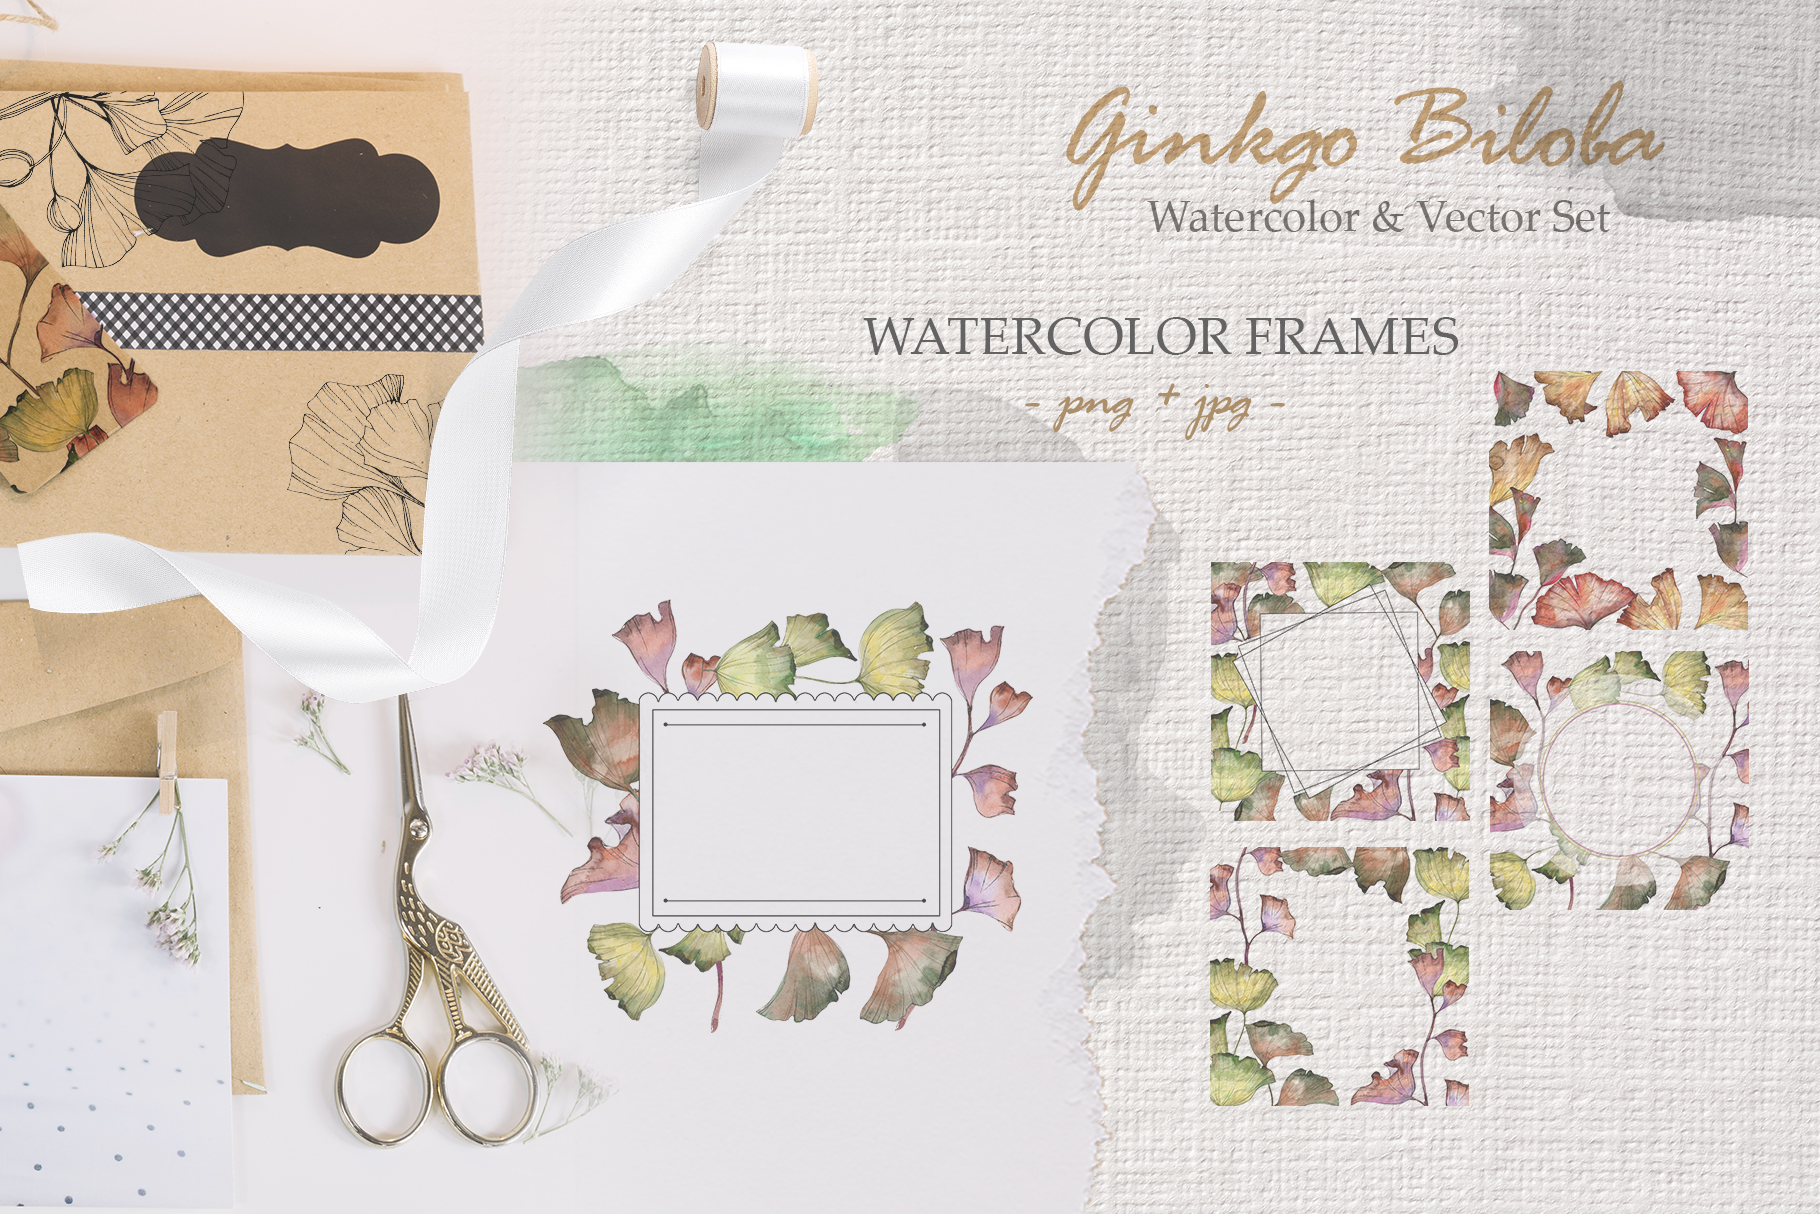 Ginkgo Biloba watercolor and vector set example image 5